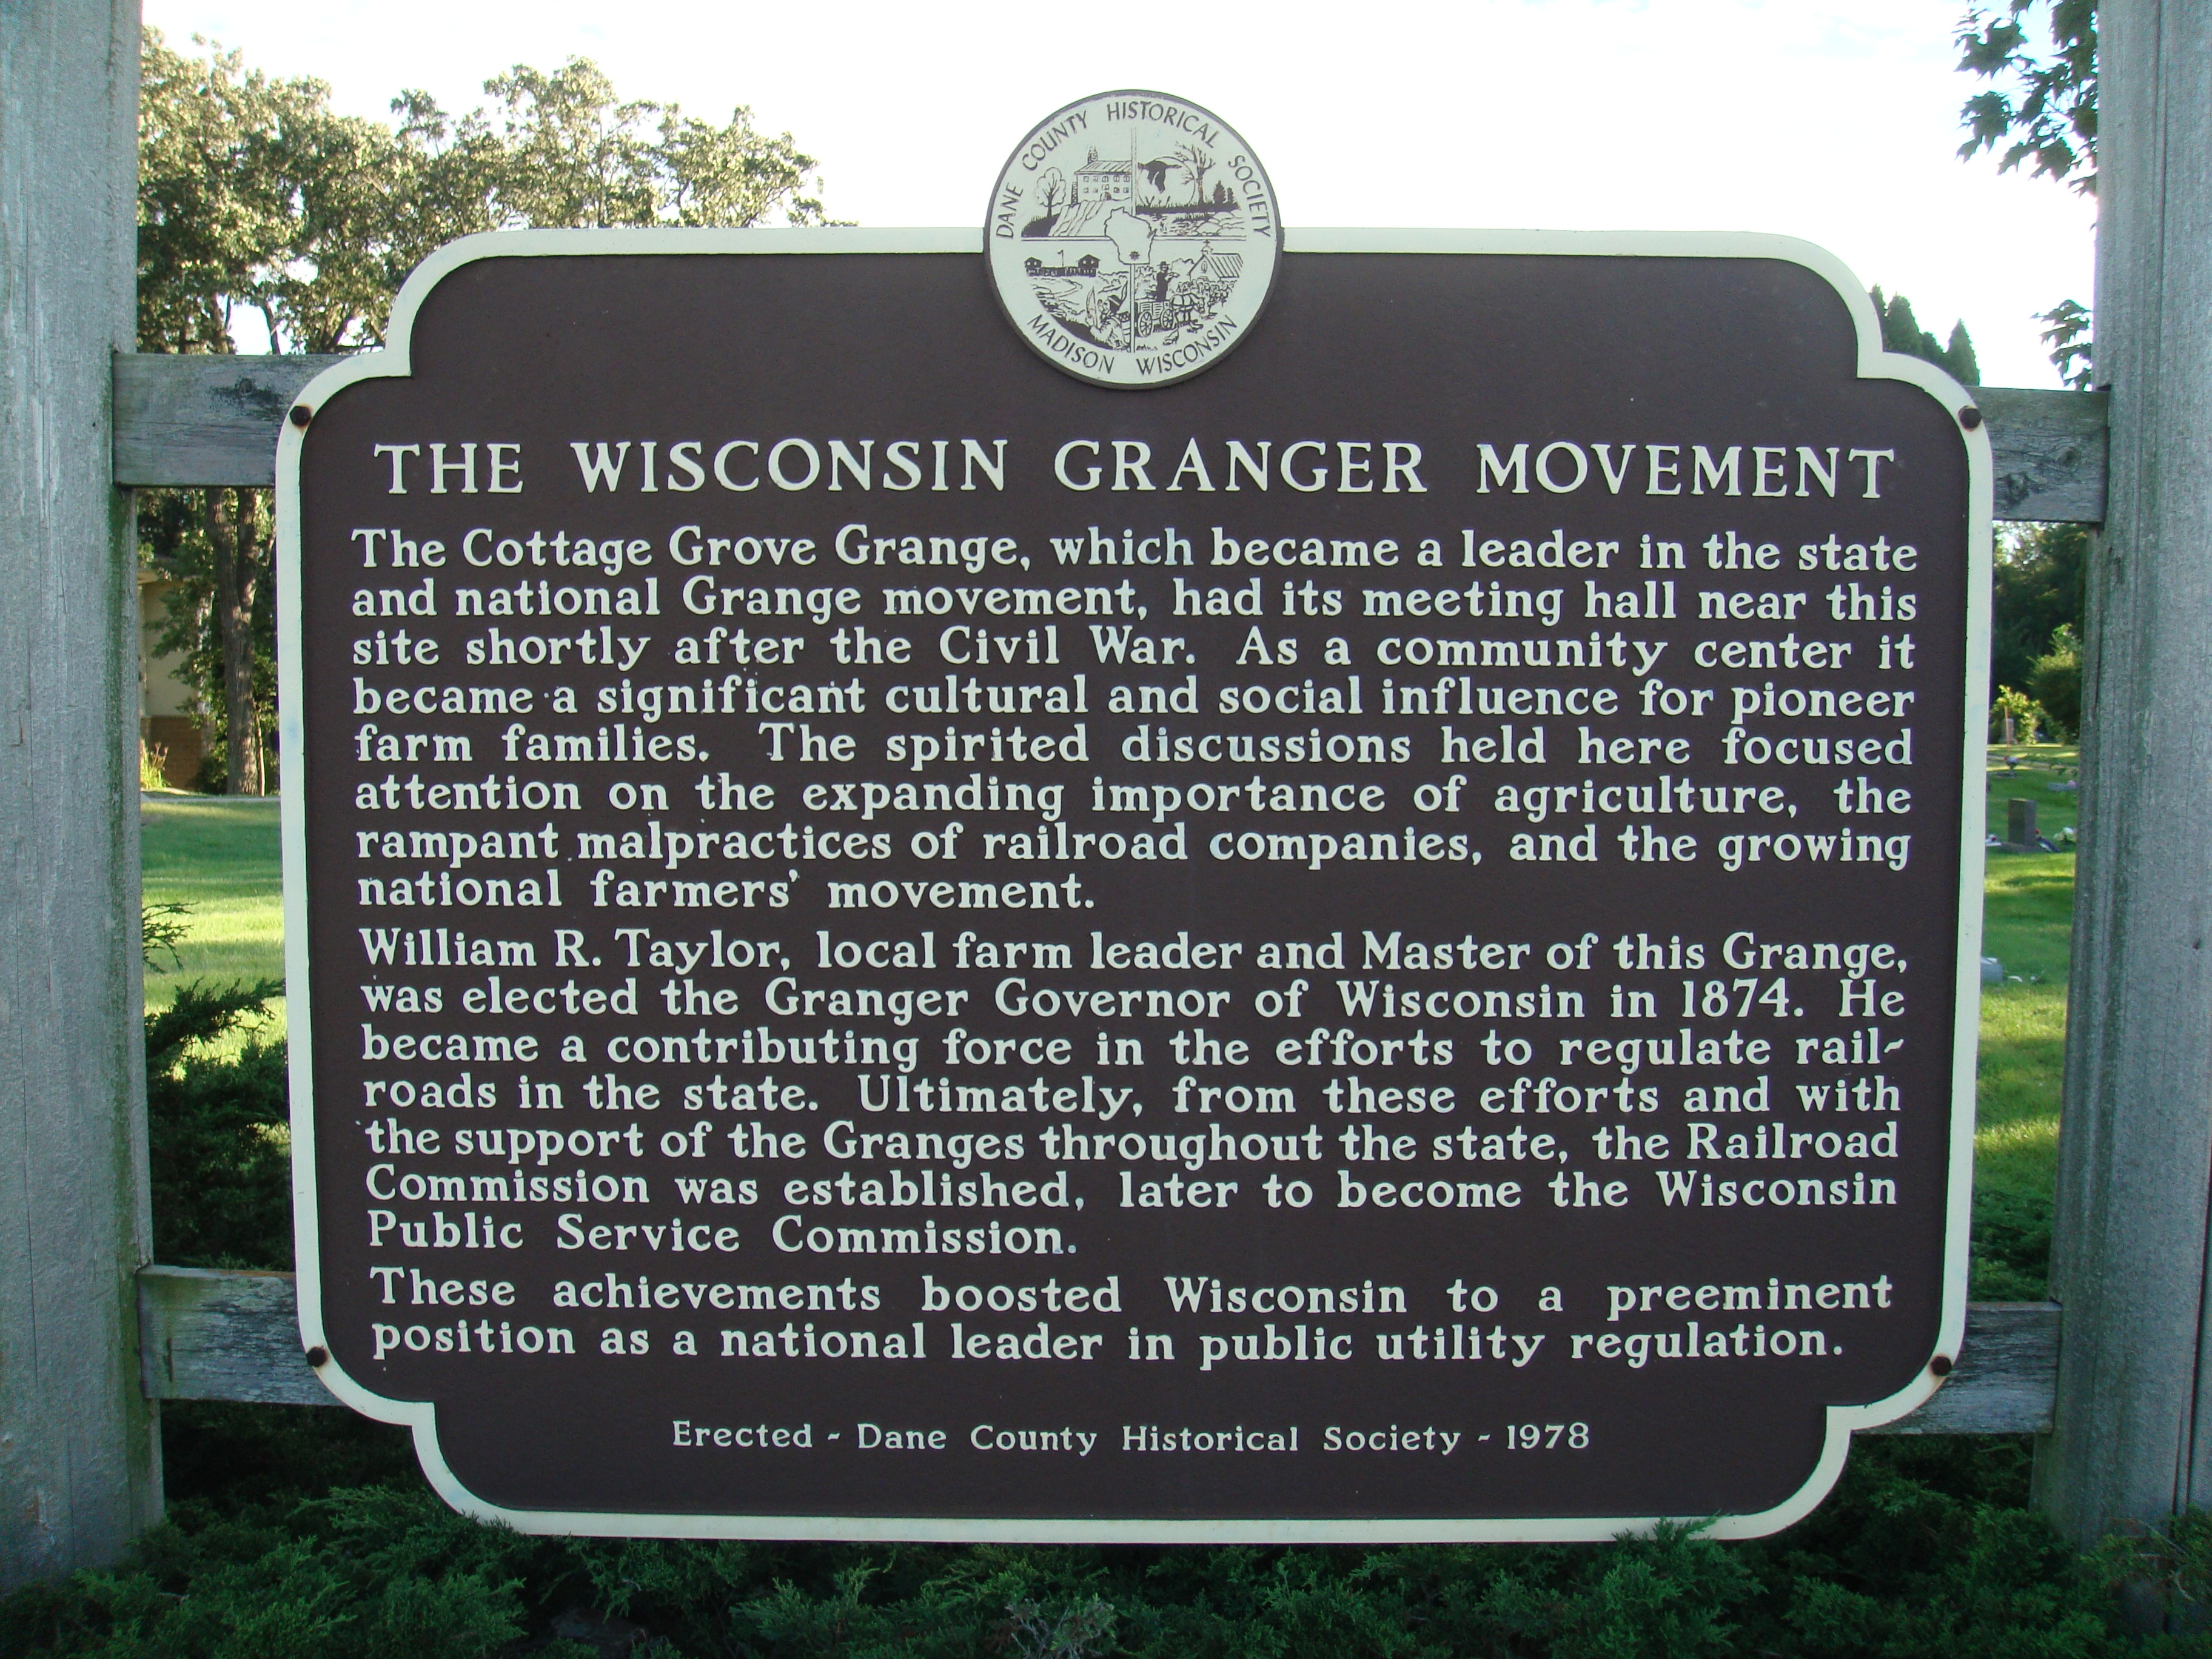 The Wisconsin Granger Movement Marker